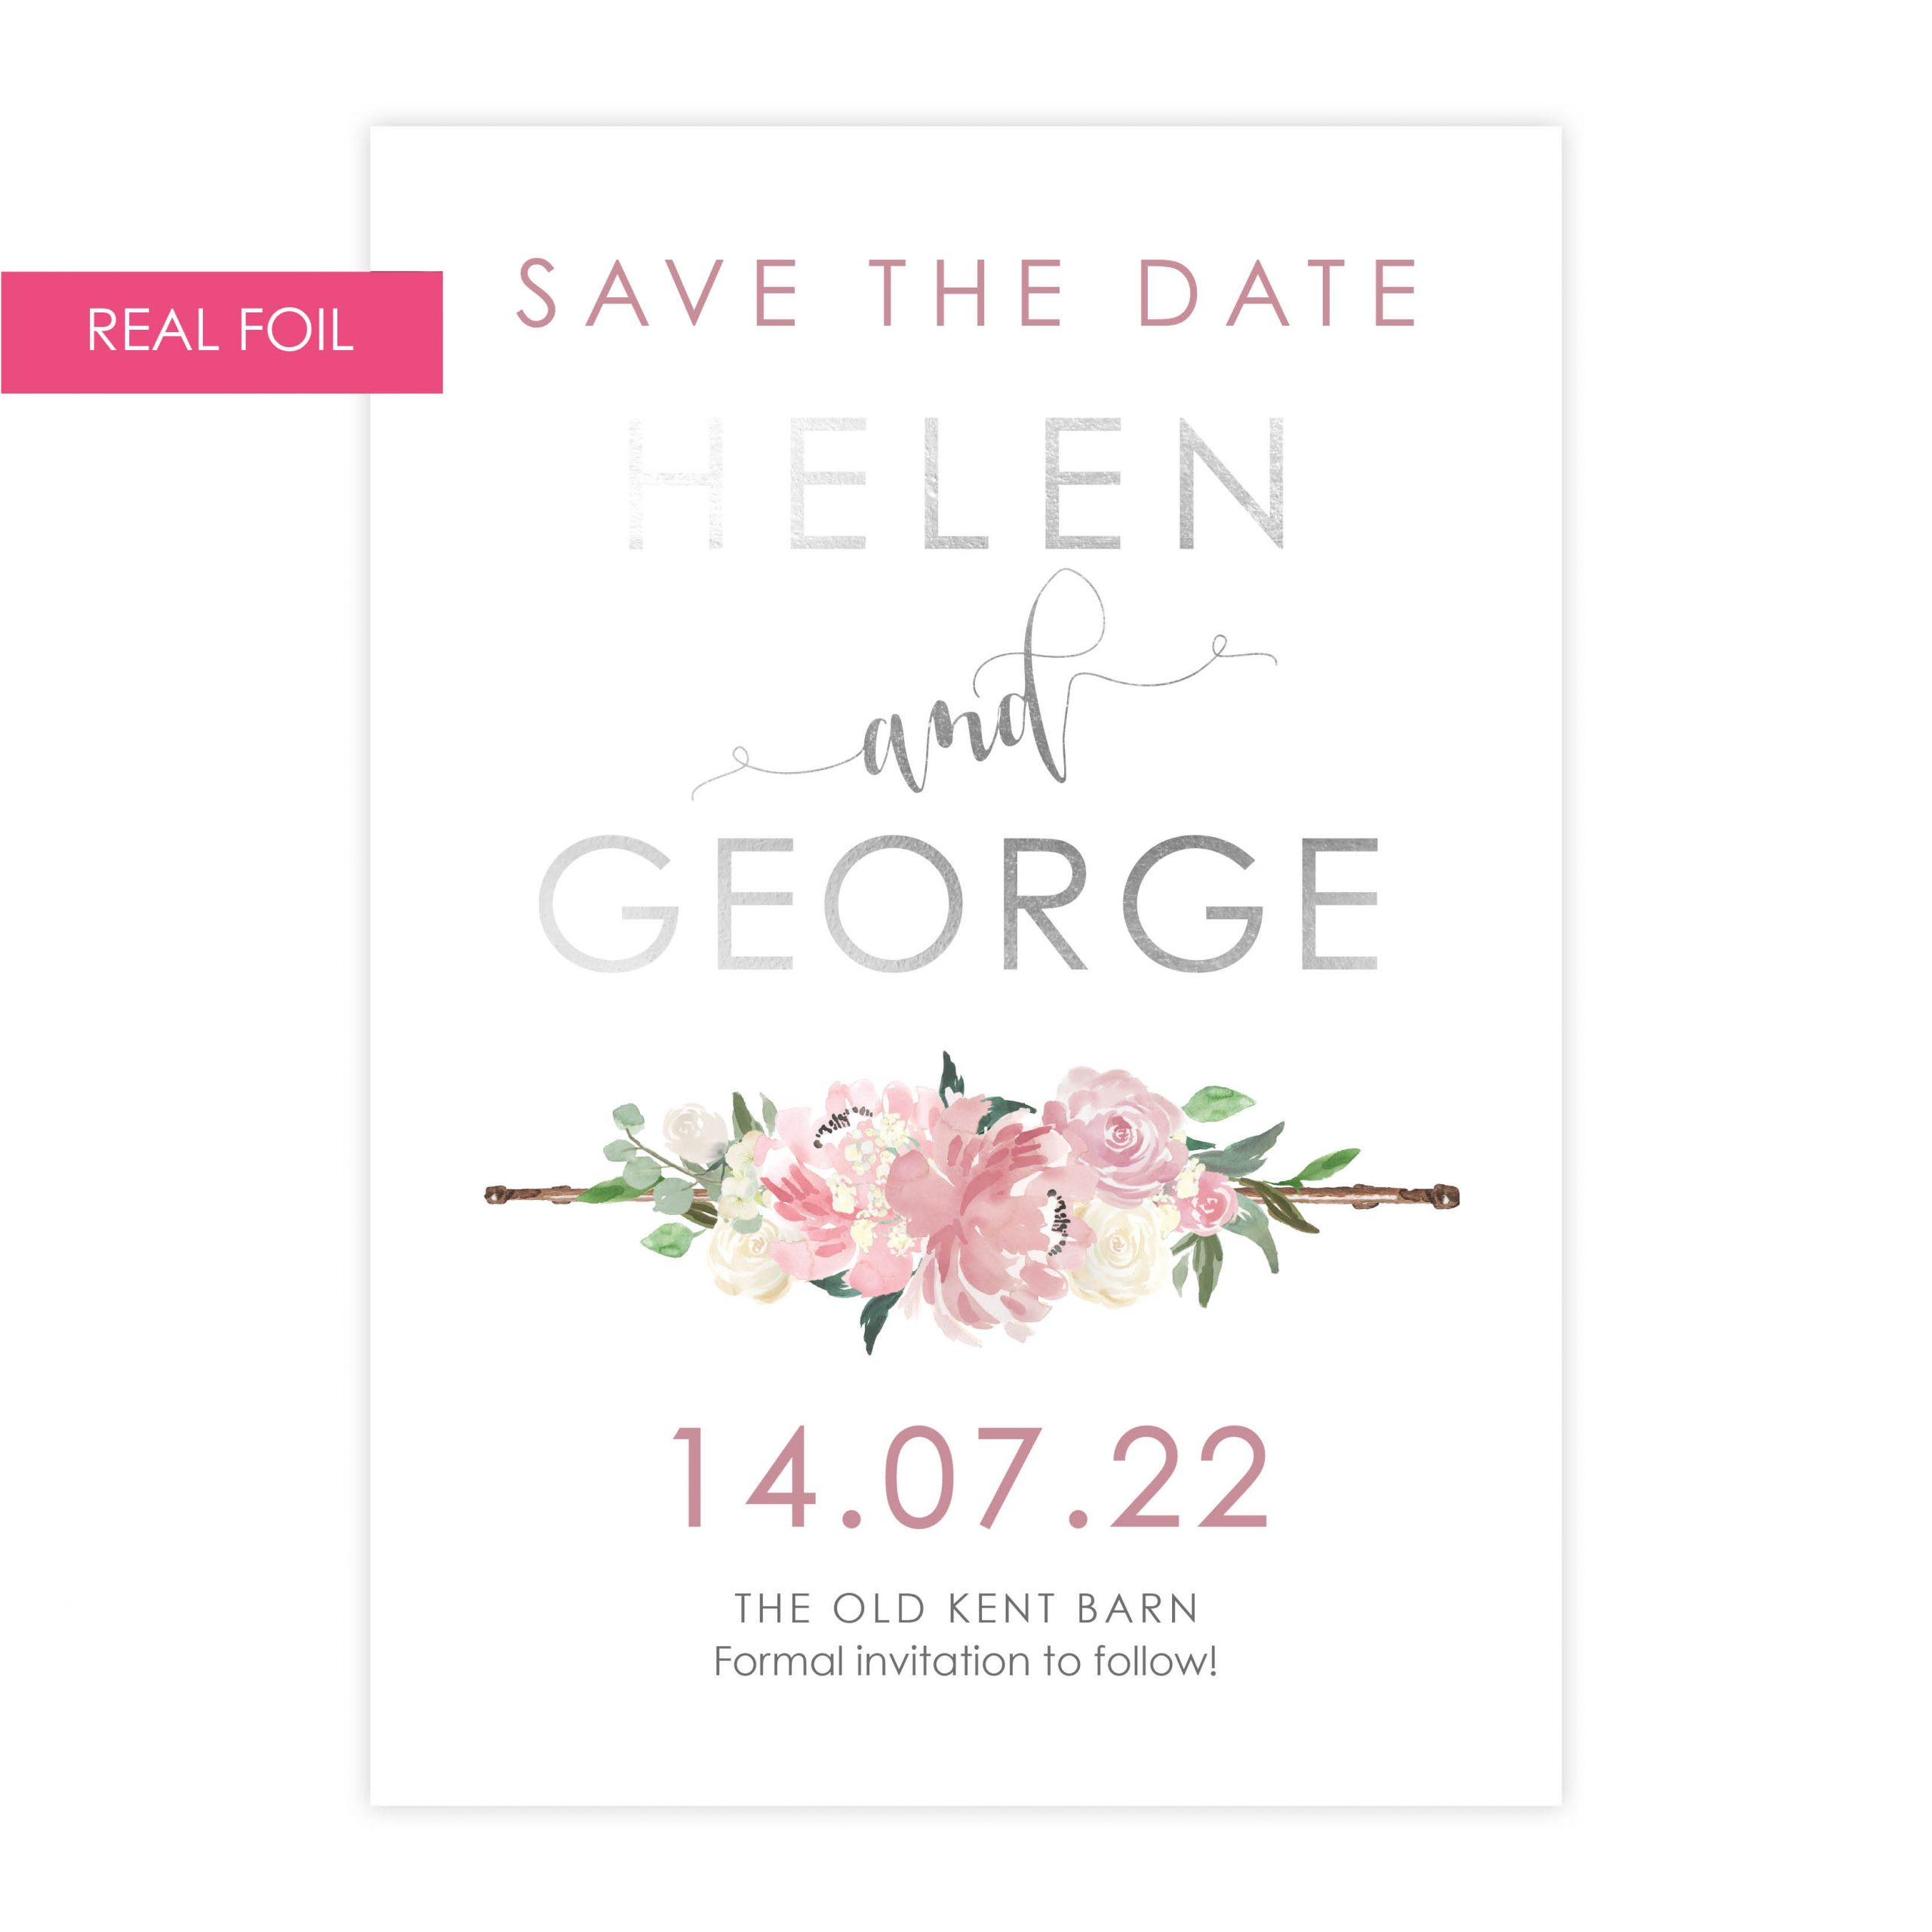 FH blush pink save the date silver foil